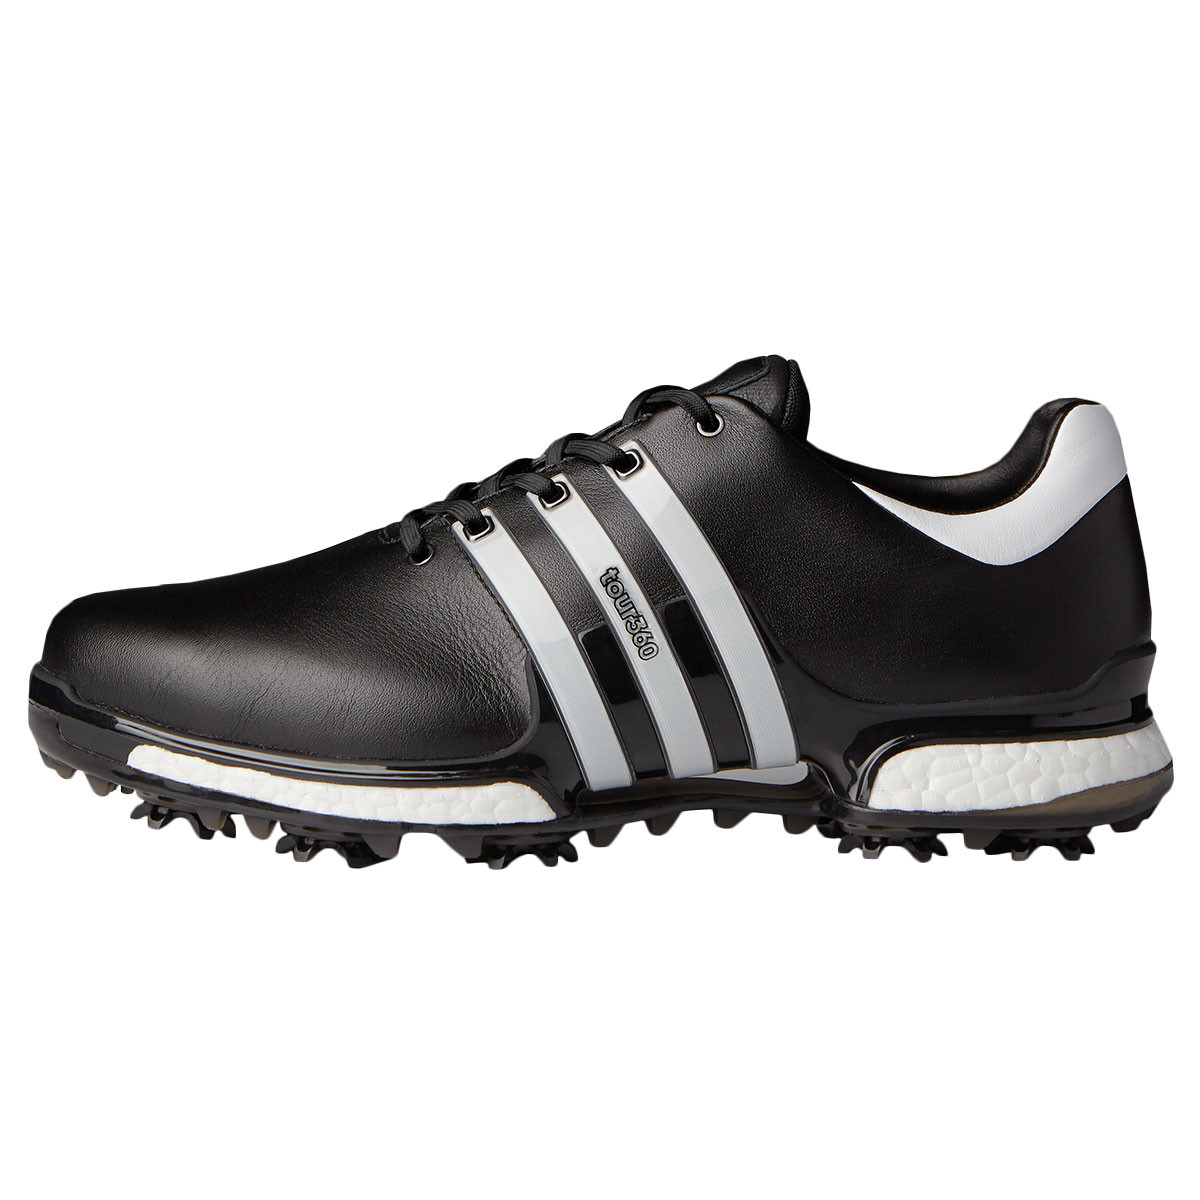 417dba3314b297 adidas Golf Mens Tour360 Boost 2.0 WD Waterproof Golf Shoes